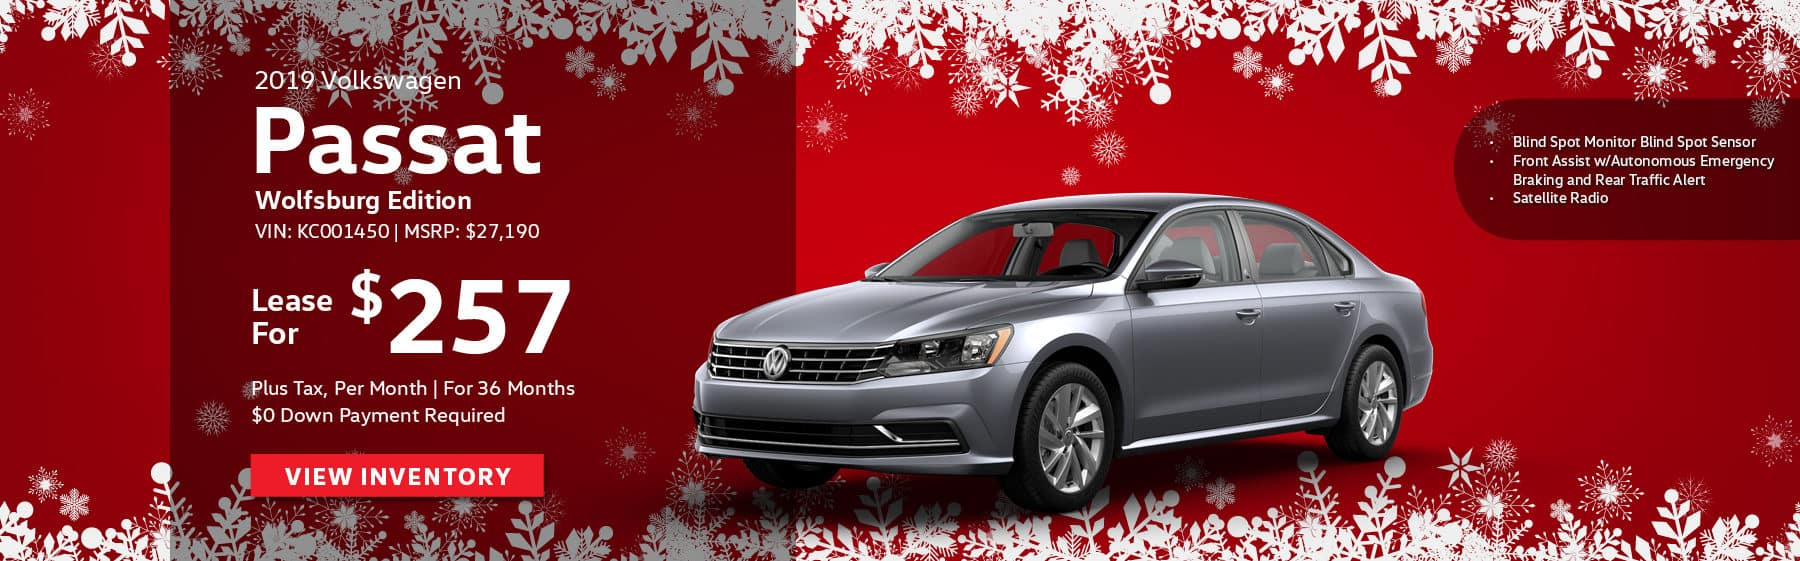 Lease the 2019 Volkswagen Passat Wolfsburg Edition for $257 plus tax for 36 months. $0 Down payment required.